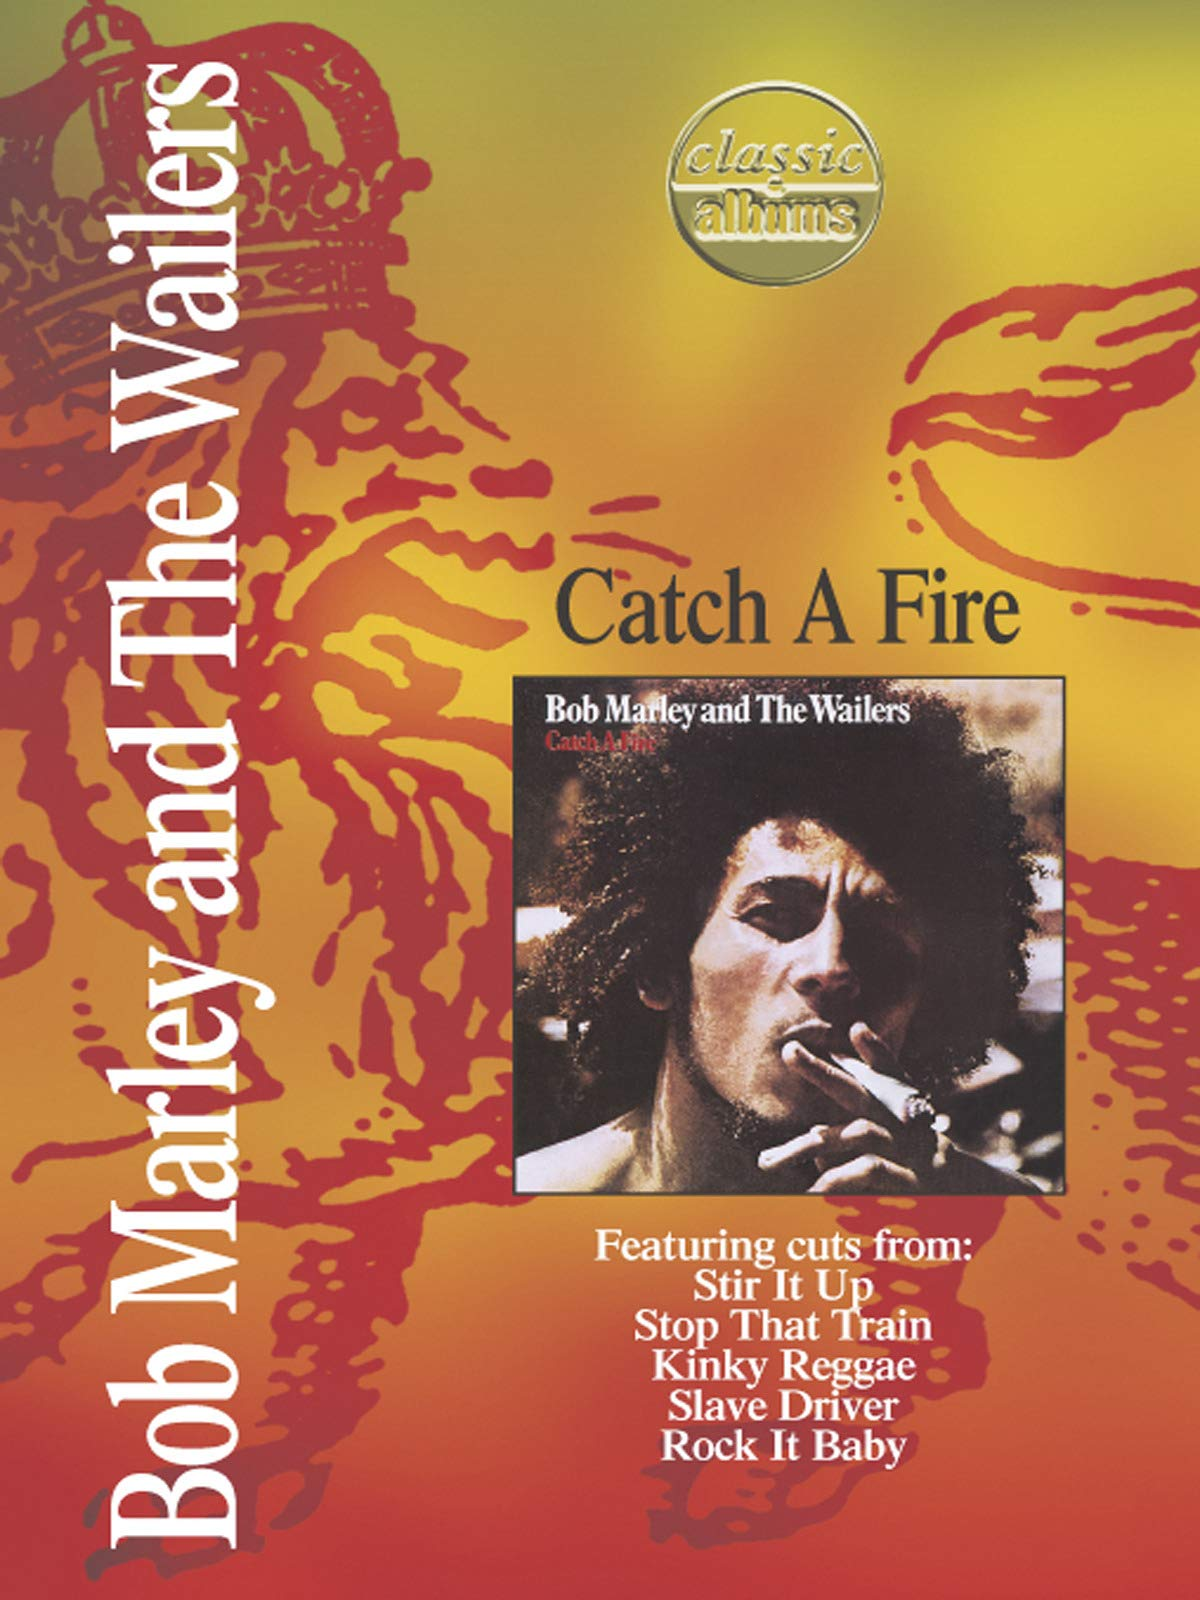 Bob Marley - Catch A Fire (Classic Album) on Amazon Prime Instant Video UK